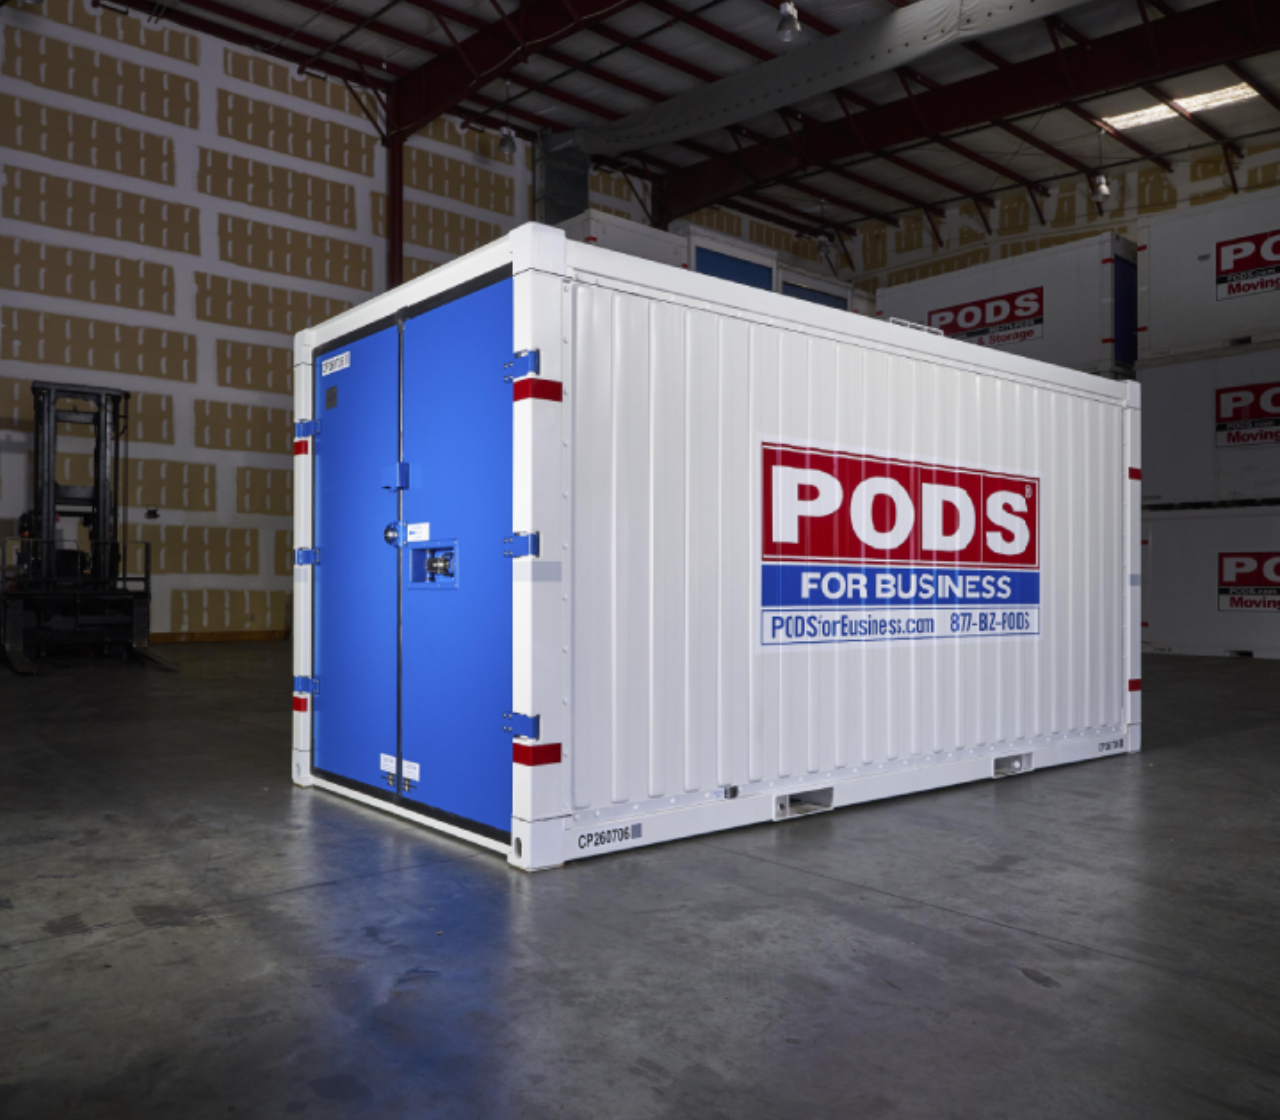 All Steel Containers For Commercial Storage Pods